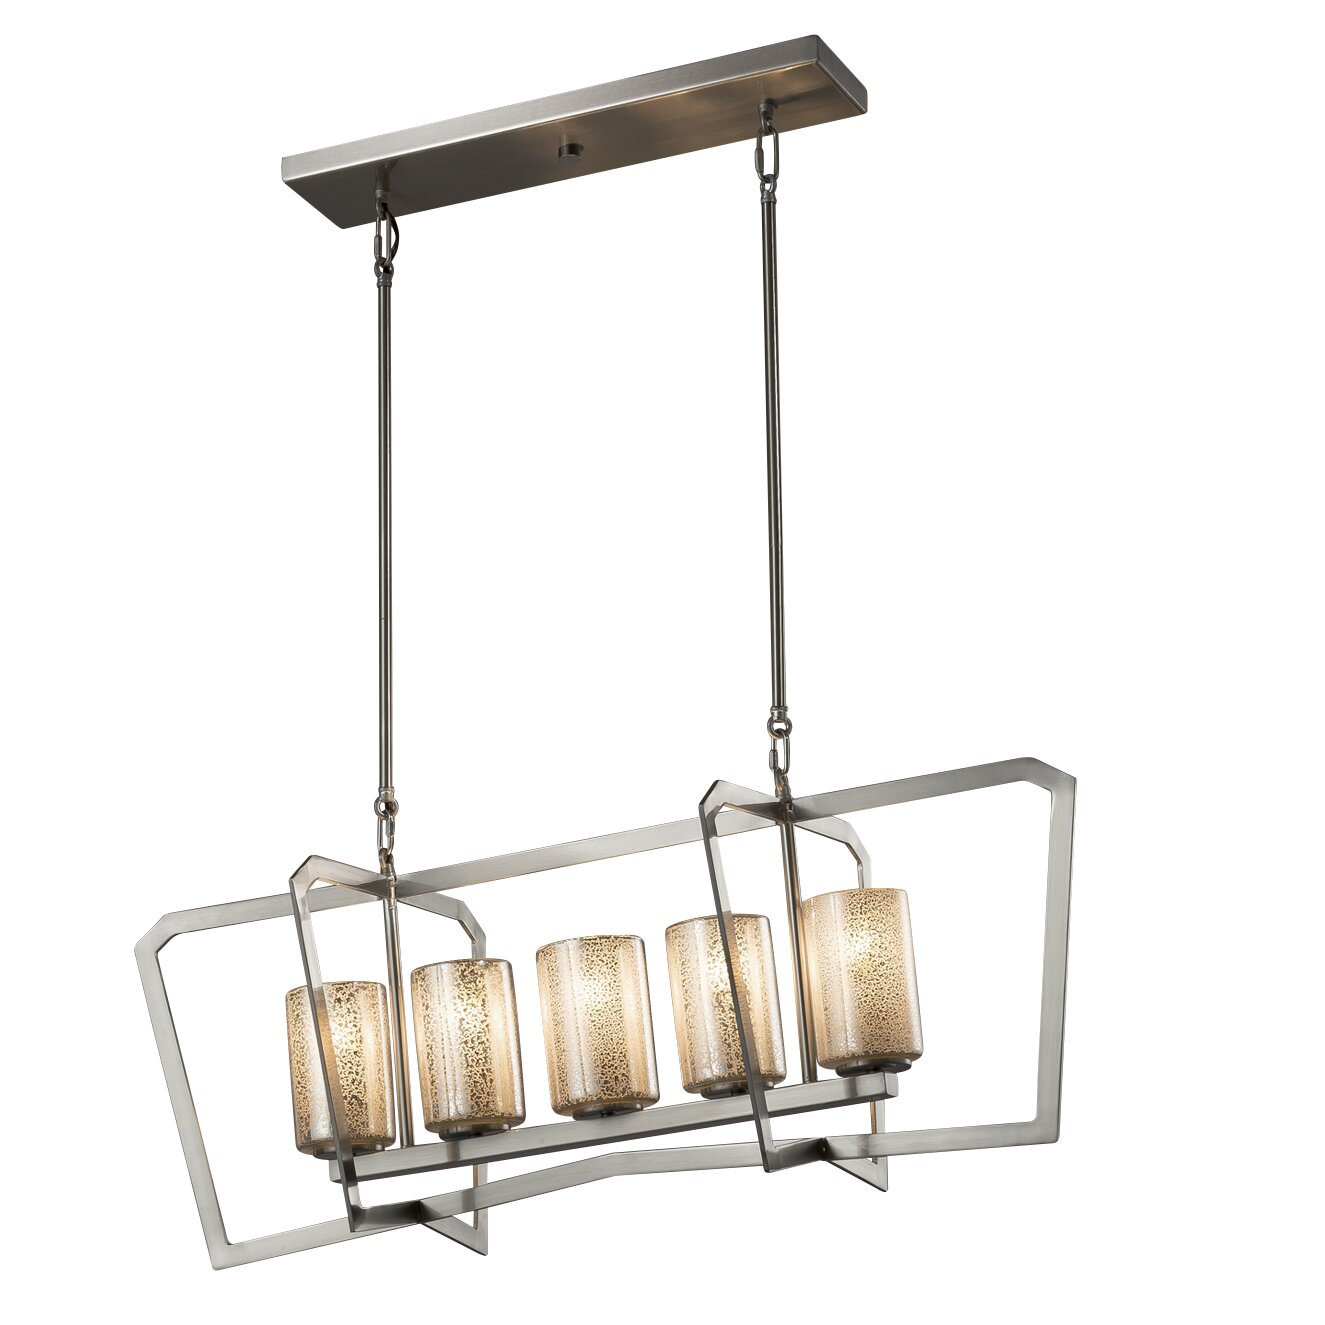 Brayden Studio Luzerne 5-Light LED Kitchen Island Pendant